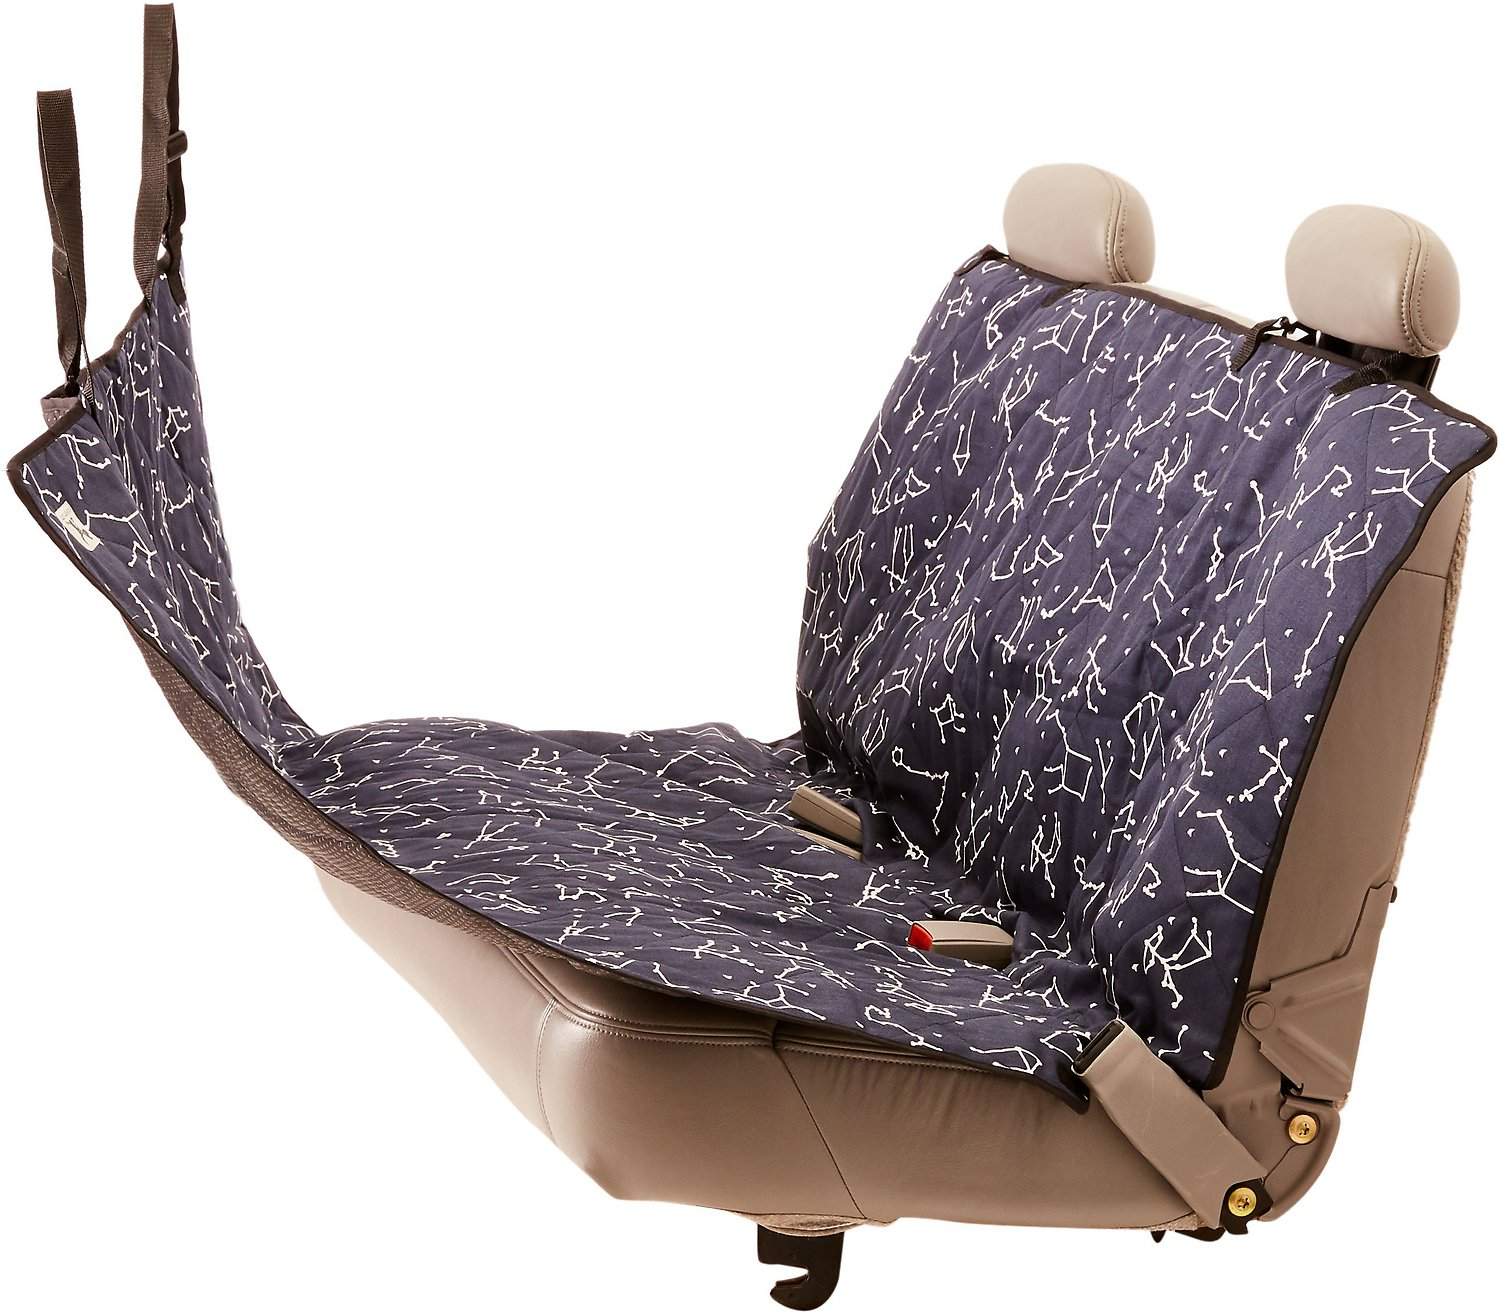 Molly Mutt Rocketman Multi Use Cargo Hammock Amp Car Seat